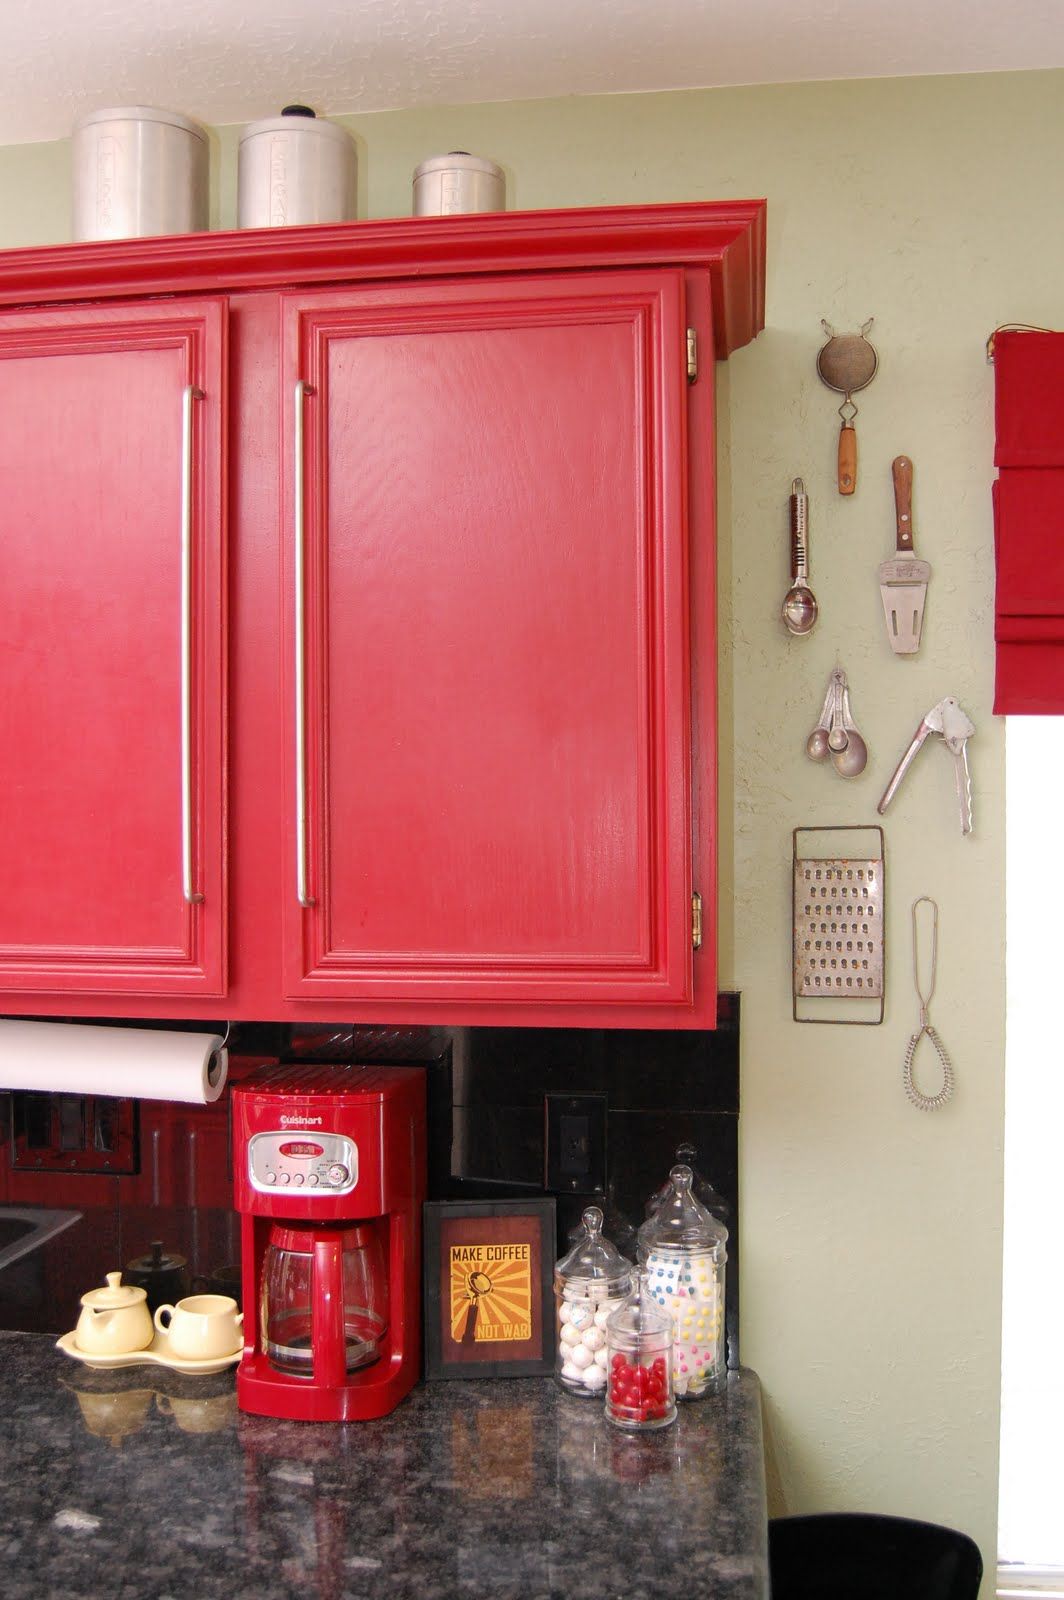 decorated my kitchen with some old kitchen utensils, cans, tools, etc